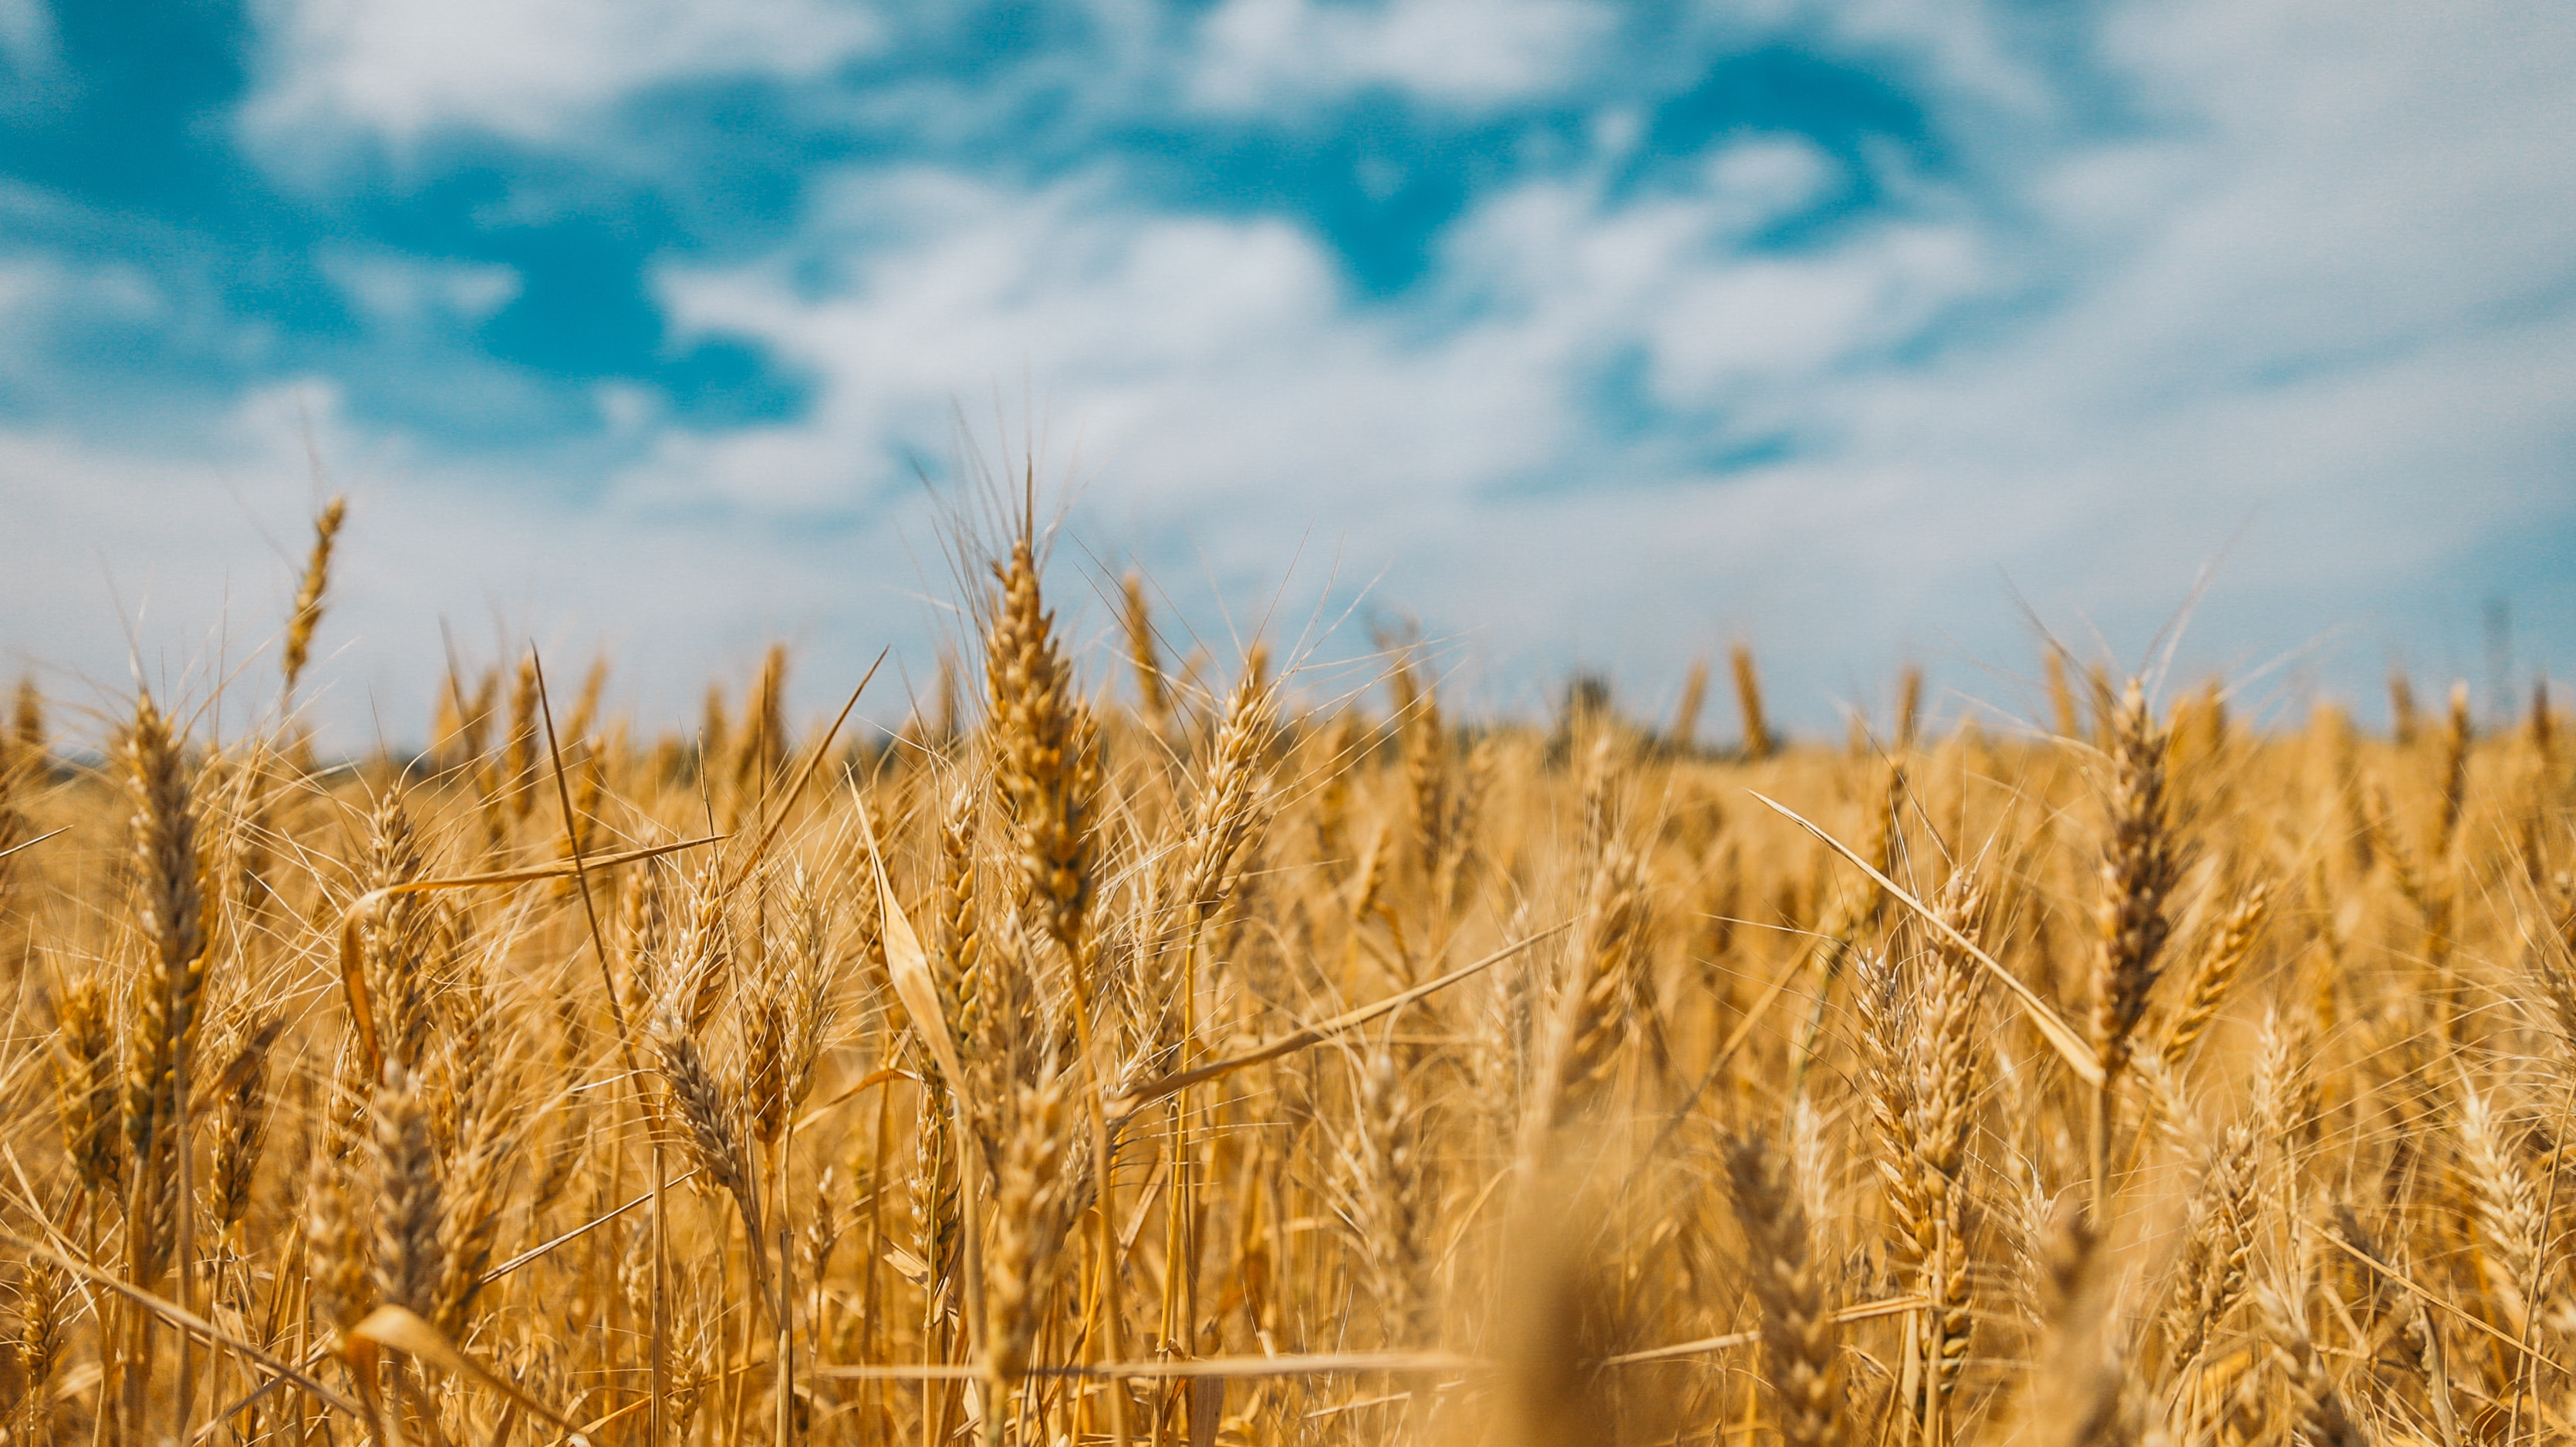 wheat stalks in a field with blue skies overhead